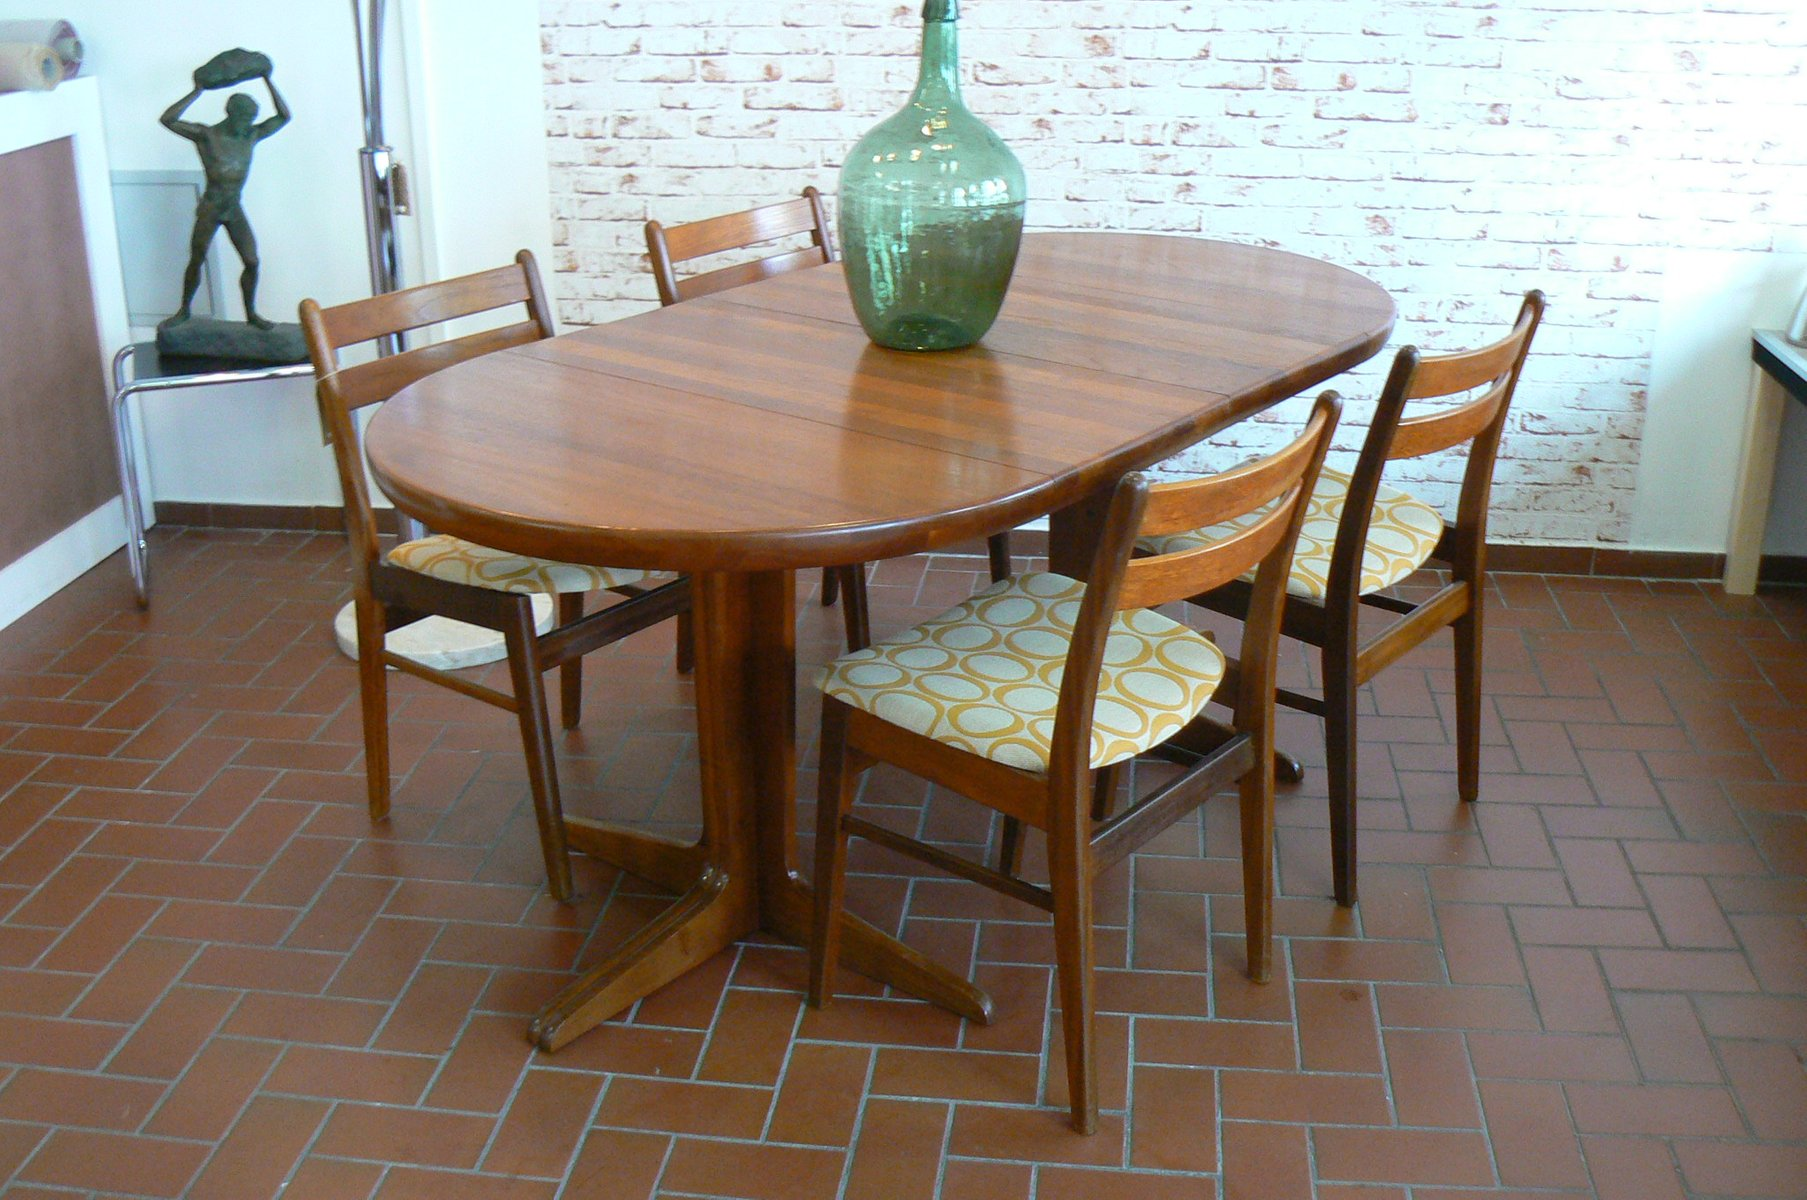 Danish Teak Dining Chairs 1970s Set Of 4 For Sale At Pamono